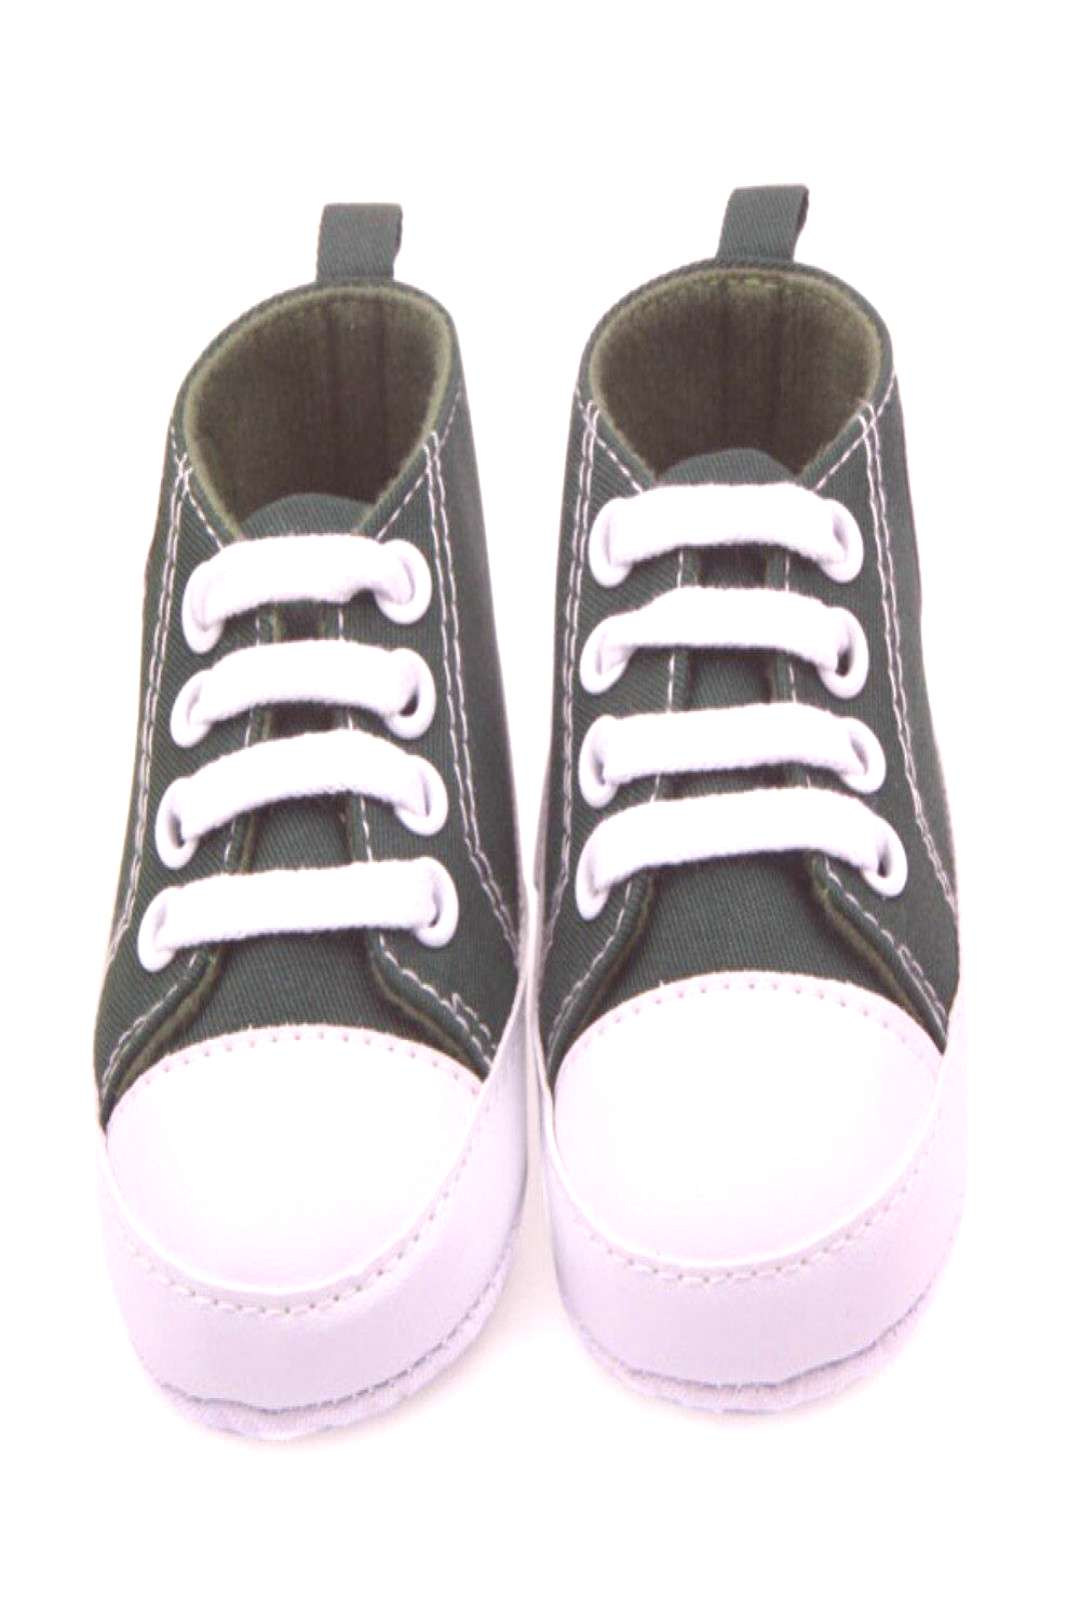 Baby Boys Girls Canvas Shoes Infant Soft Sole Crib Prewalker 0-12M 12 Colors New Baby Shoes - Buy i